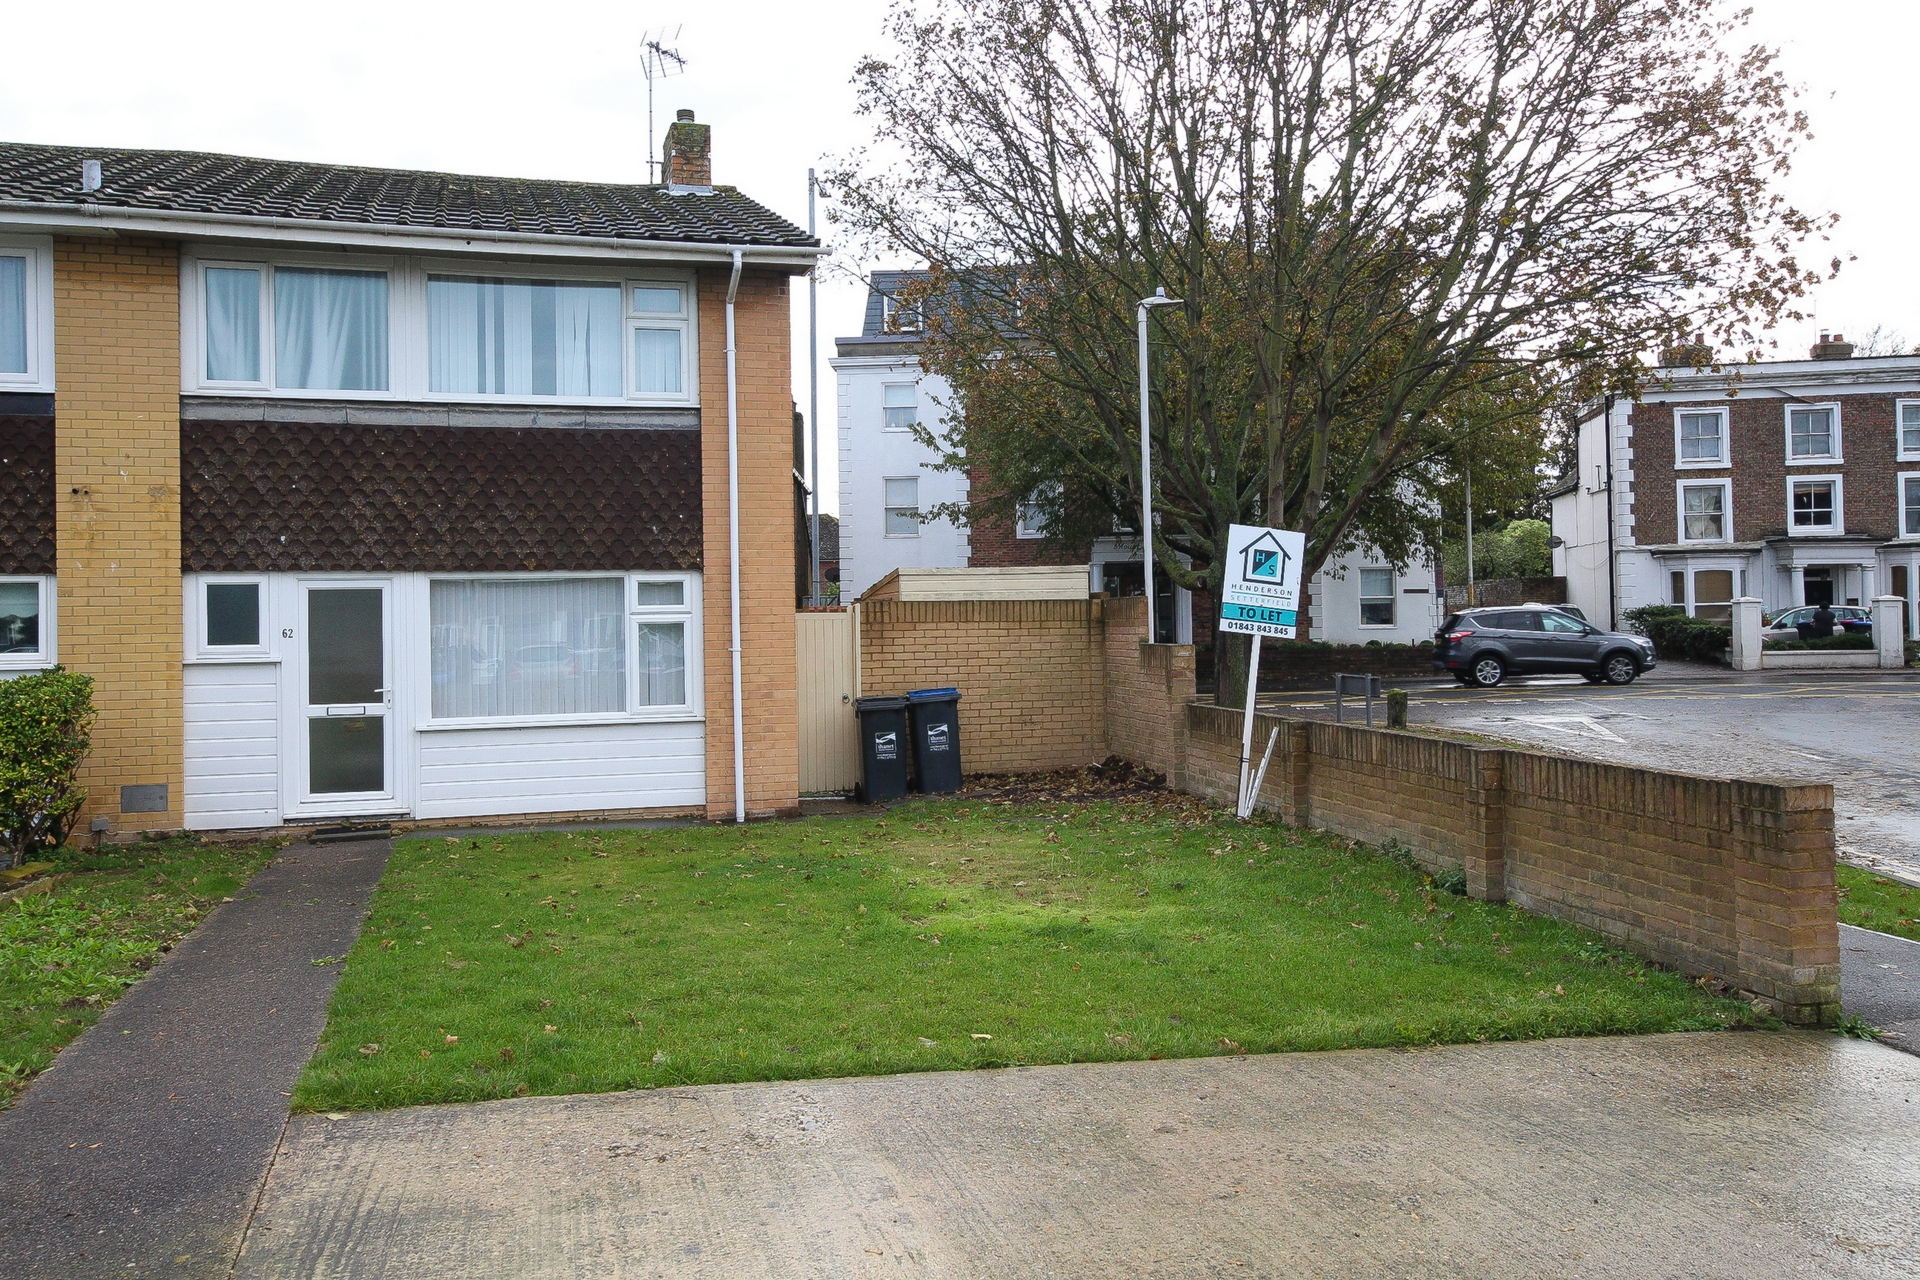 3 bed house to rent in Yew Tree Gardens, Birchington, CT7 - Property Image 1